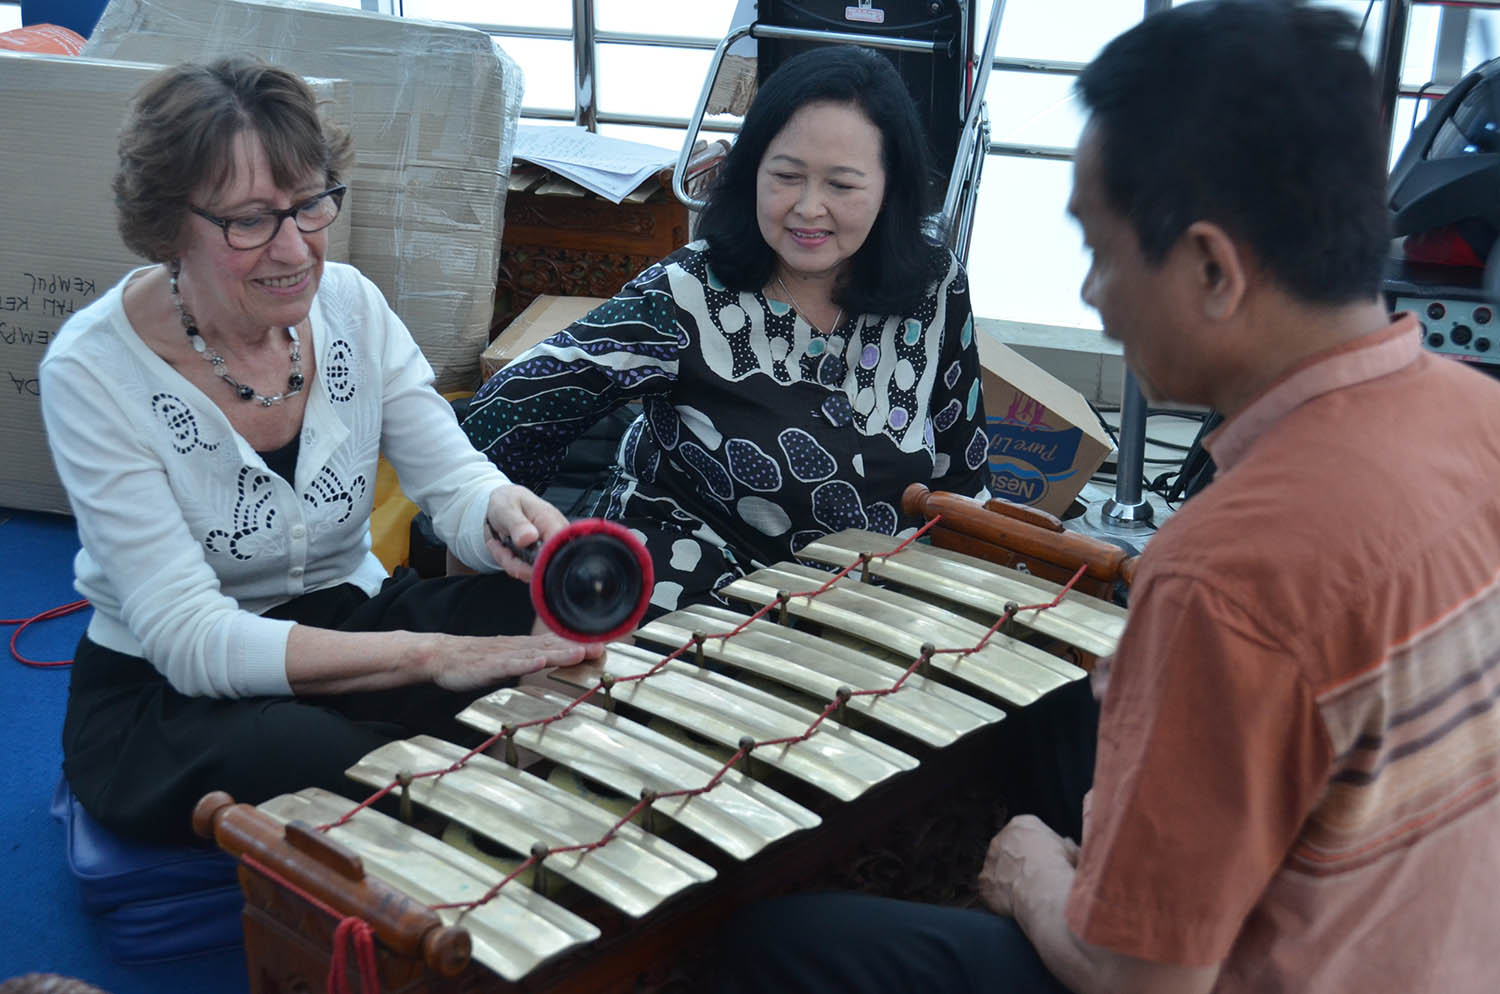 UDINUS INTRODUCES GAMELAN TO BELGIUM